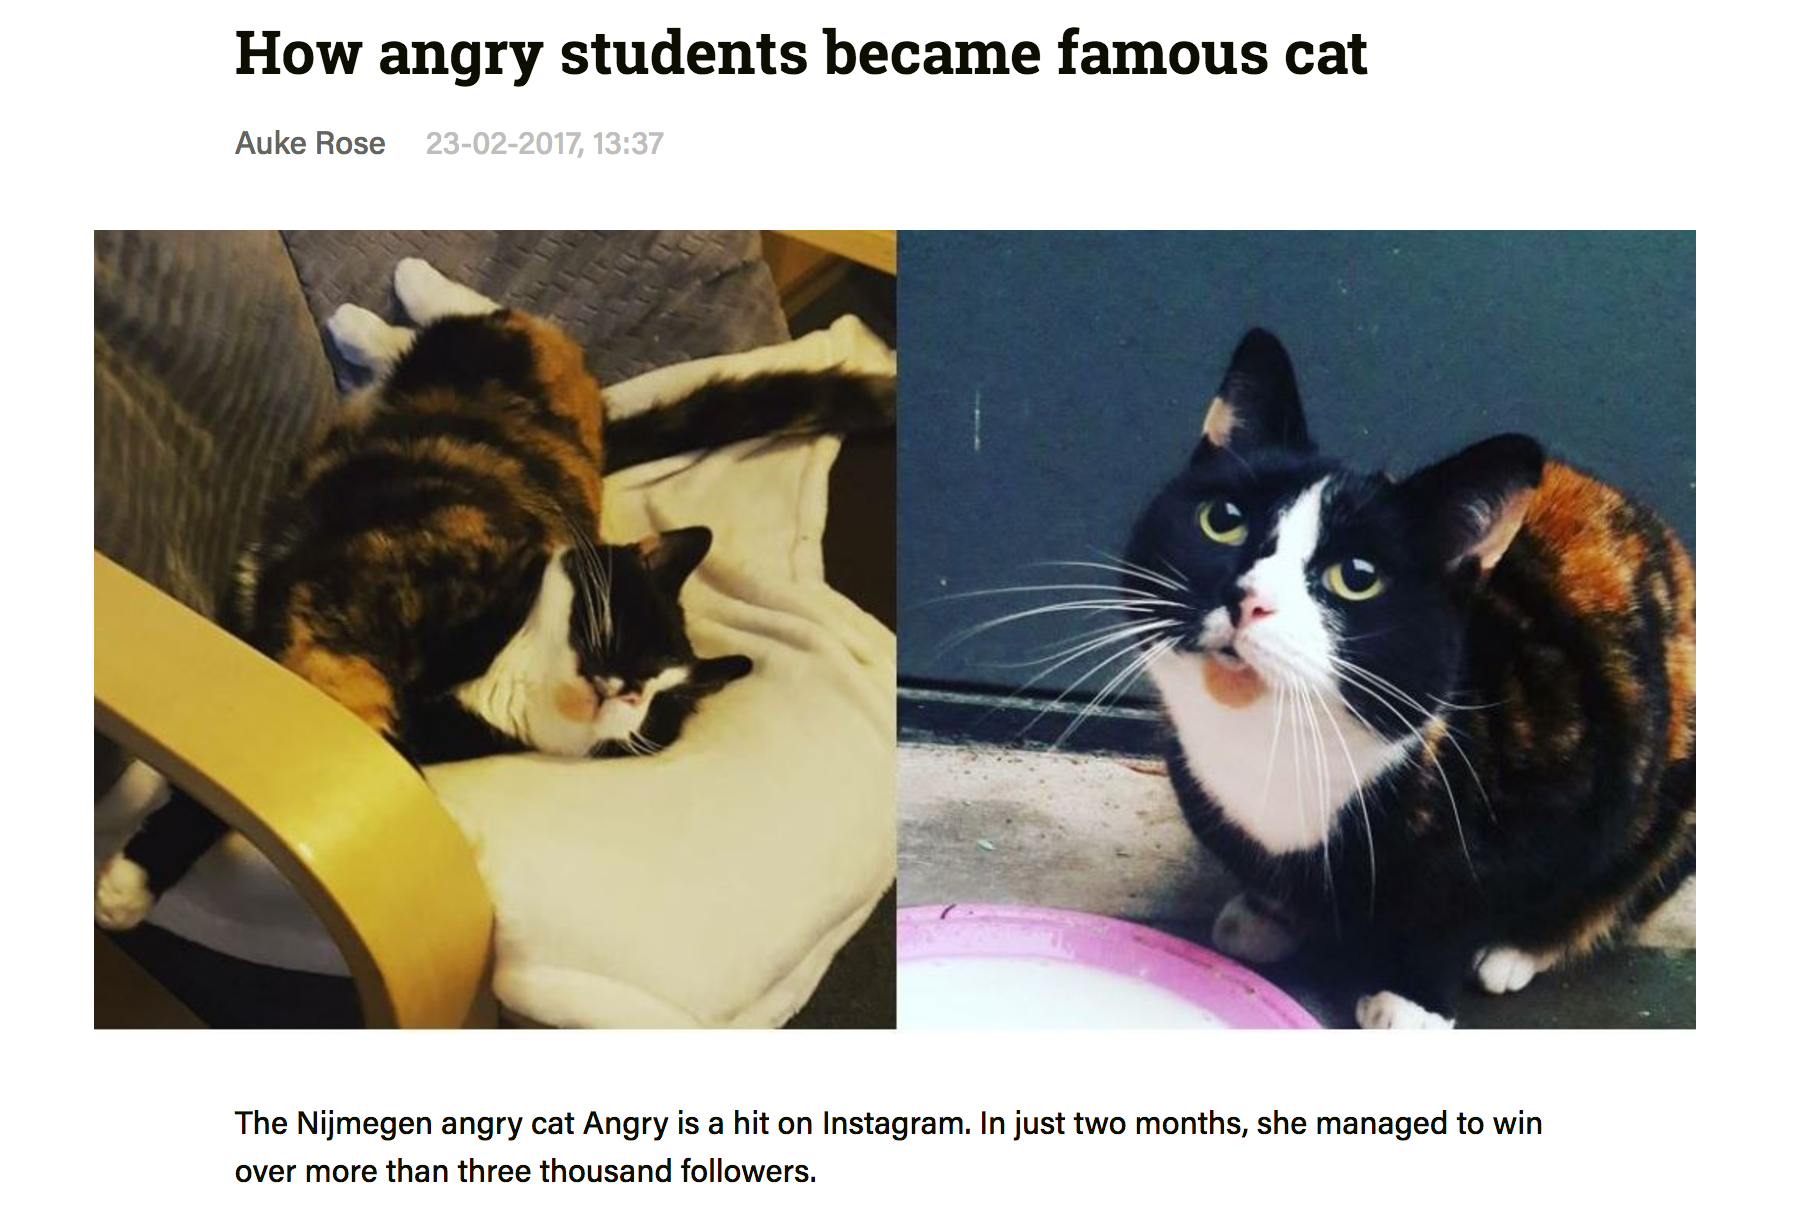 "So ""Google Translate"" isn't exactly accurate … here is the original link: http://voxweb.nl/nieuws/angry-cat-instagram"